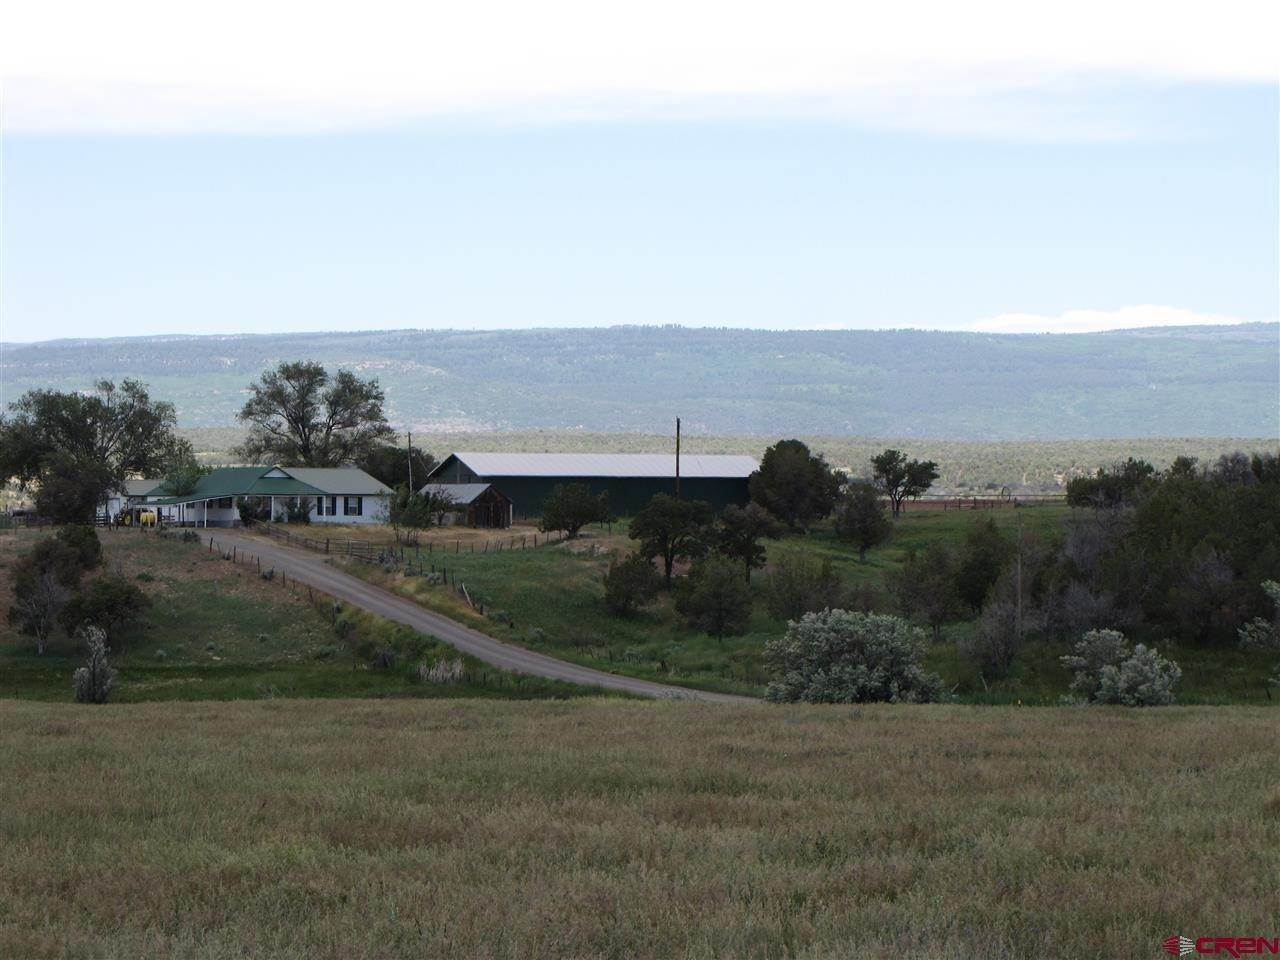 Farm and Ranch Properties for Sale at 3470 3659 Road Redvale, Colorado 81431 United States